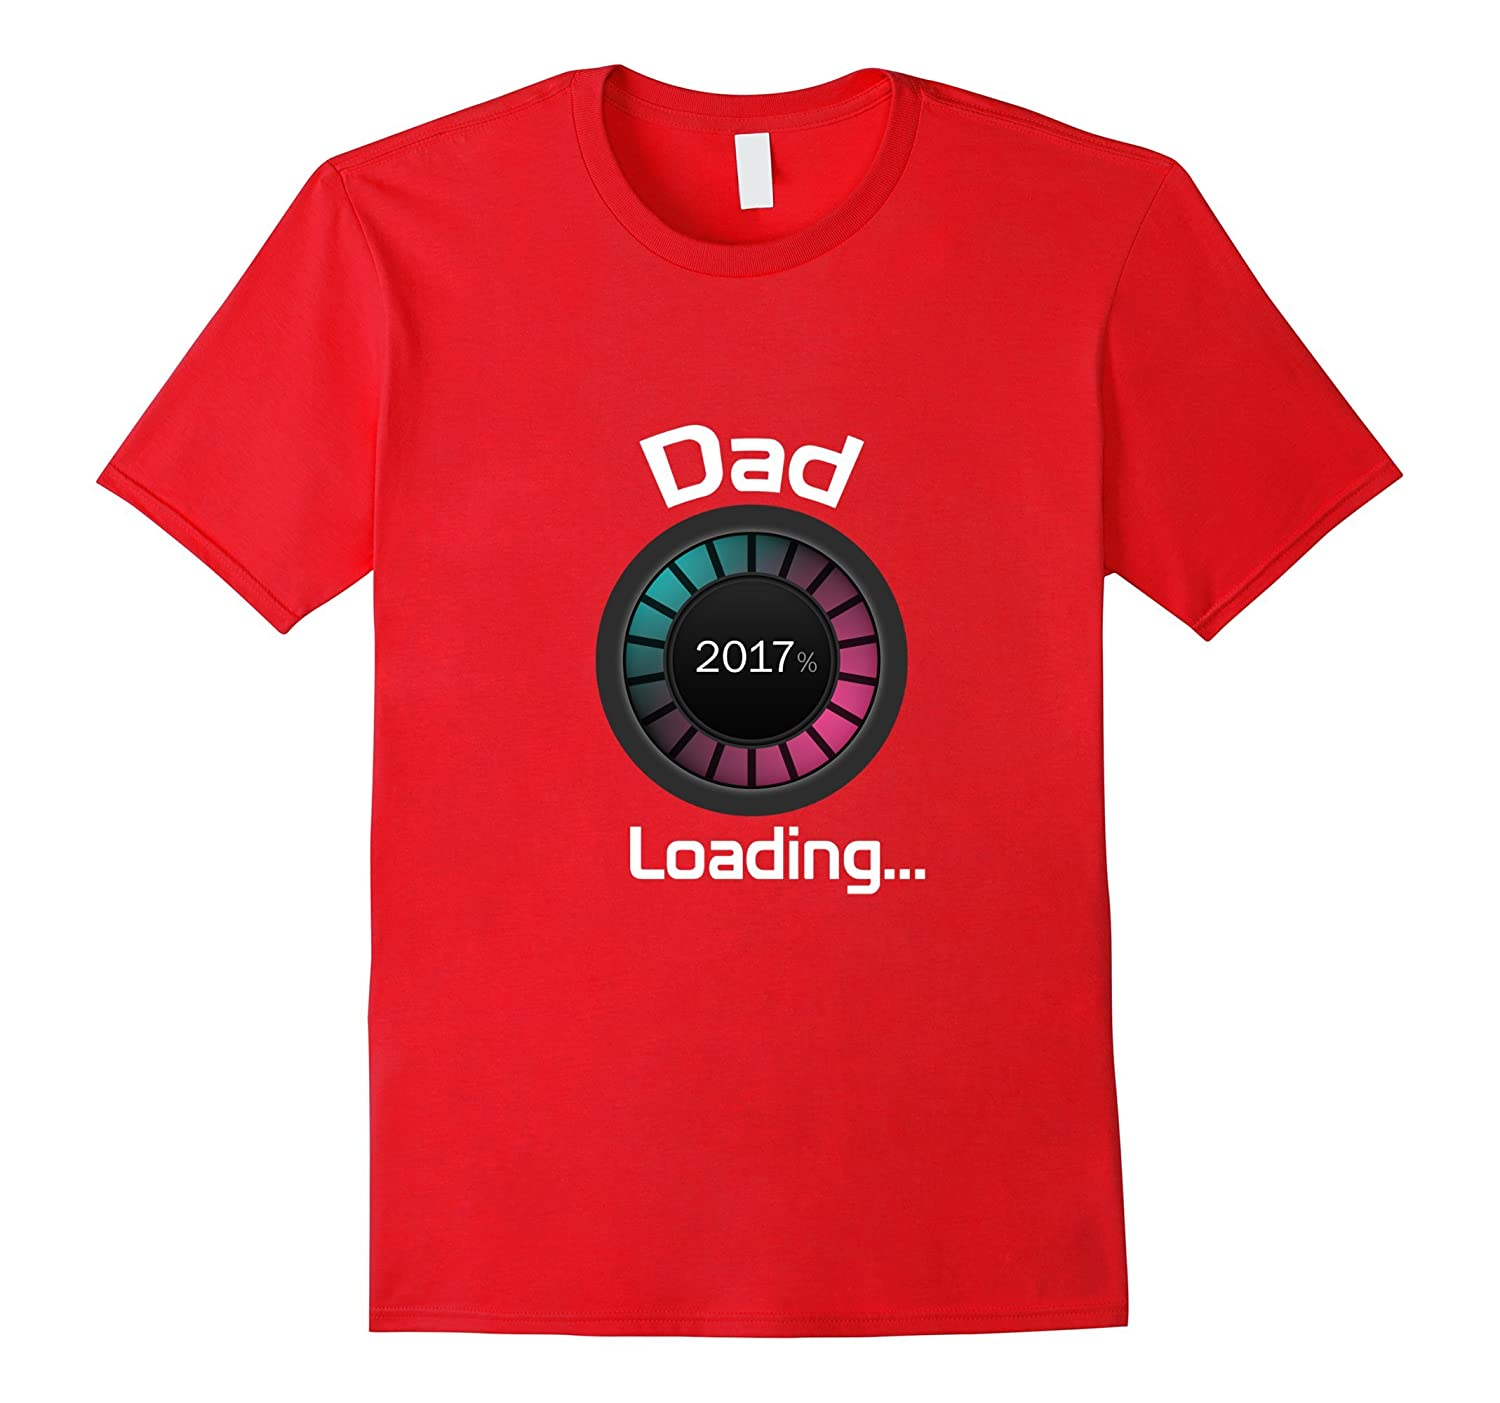 Dad 2017 Loading Cool  Funny Future Father T-shirt j-TH